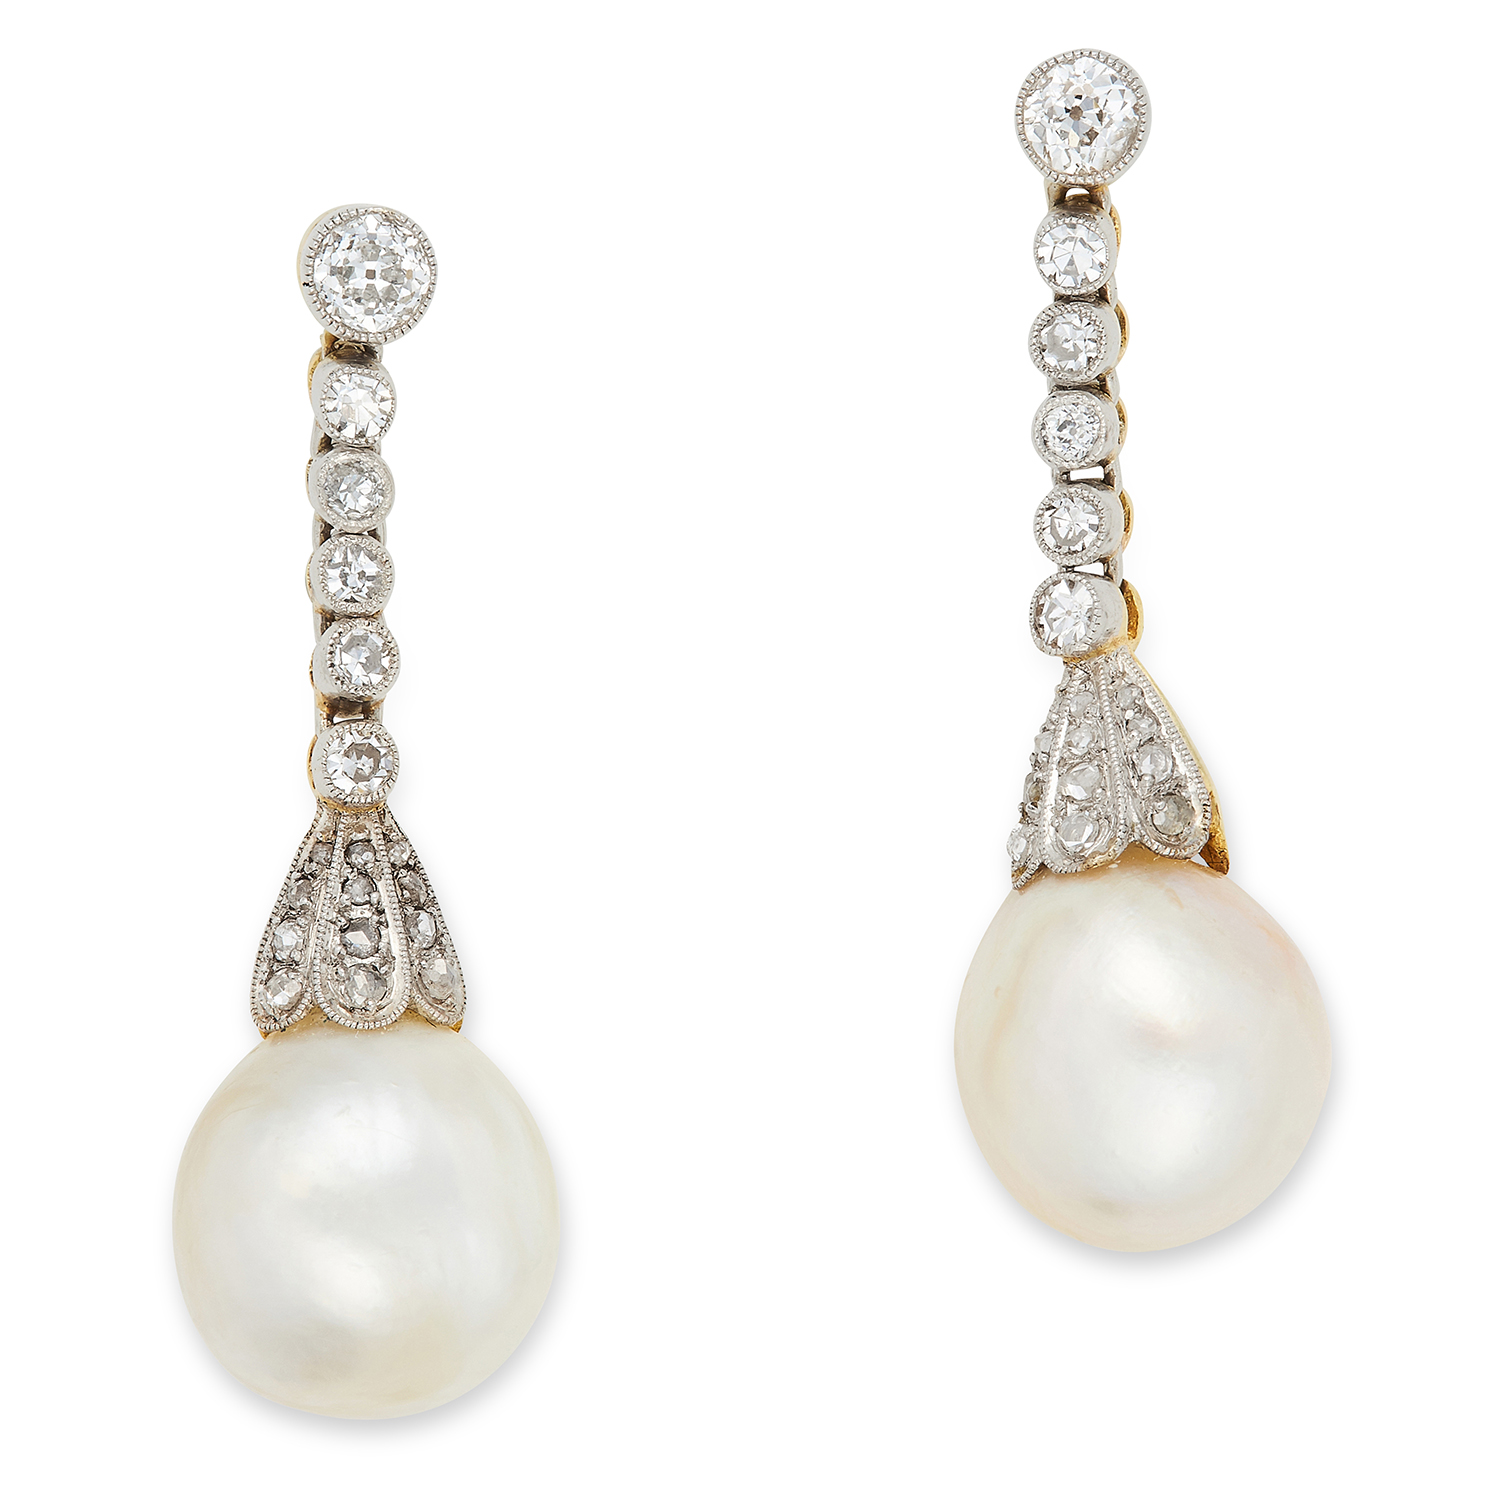 Los 48 - ANTIQUE NATURAL PEARL AND DIAMOND EARRINGS each comprising of a row of round cut diamonds and